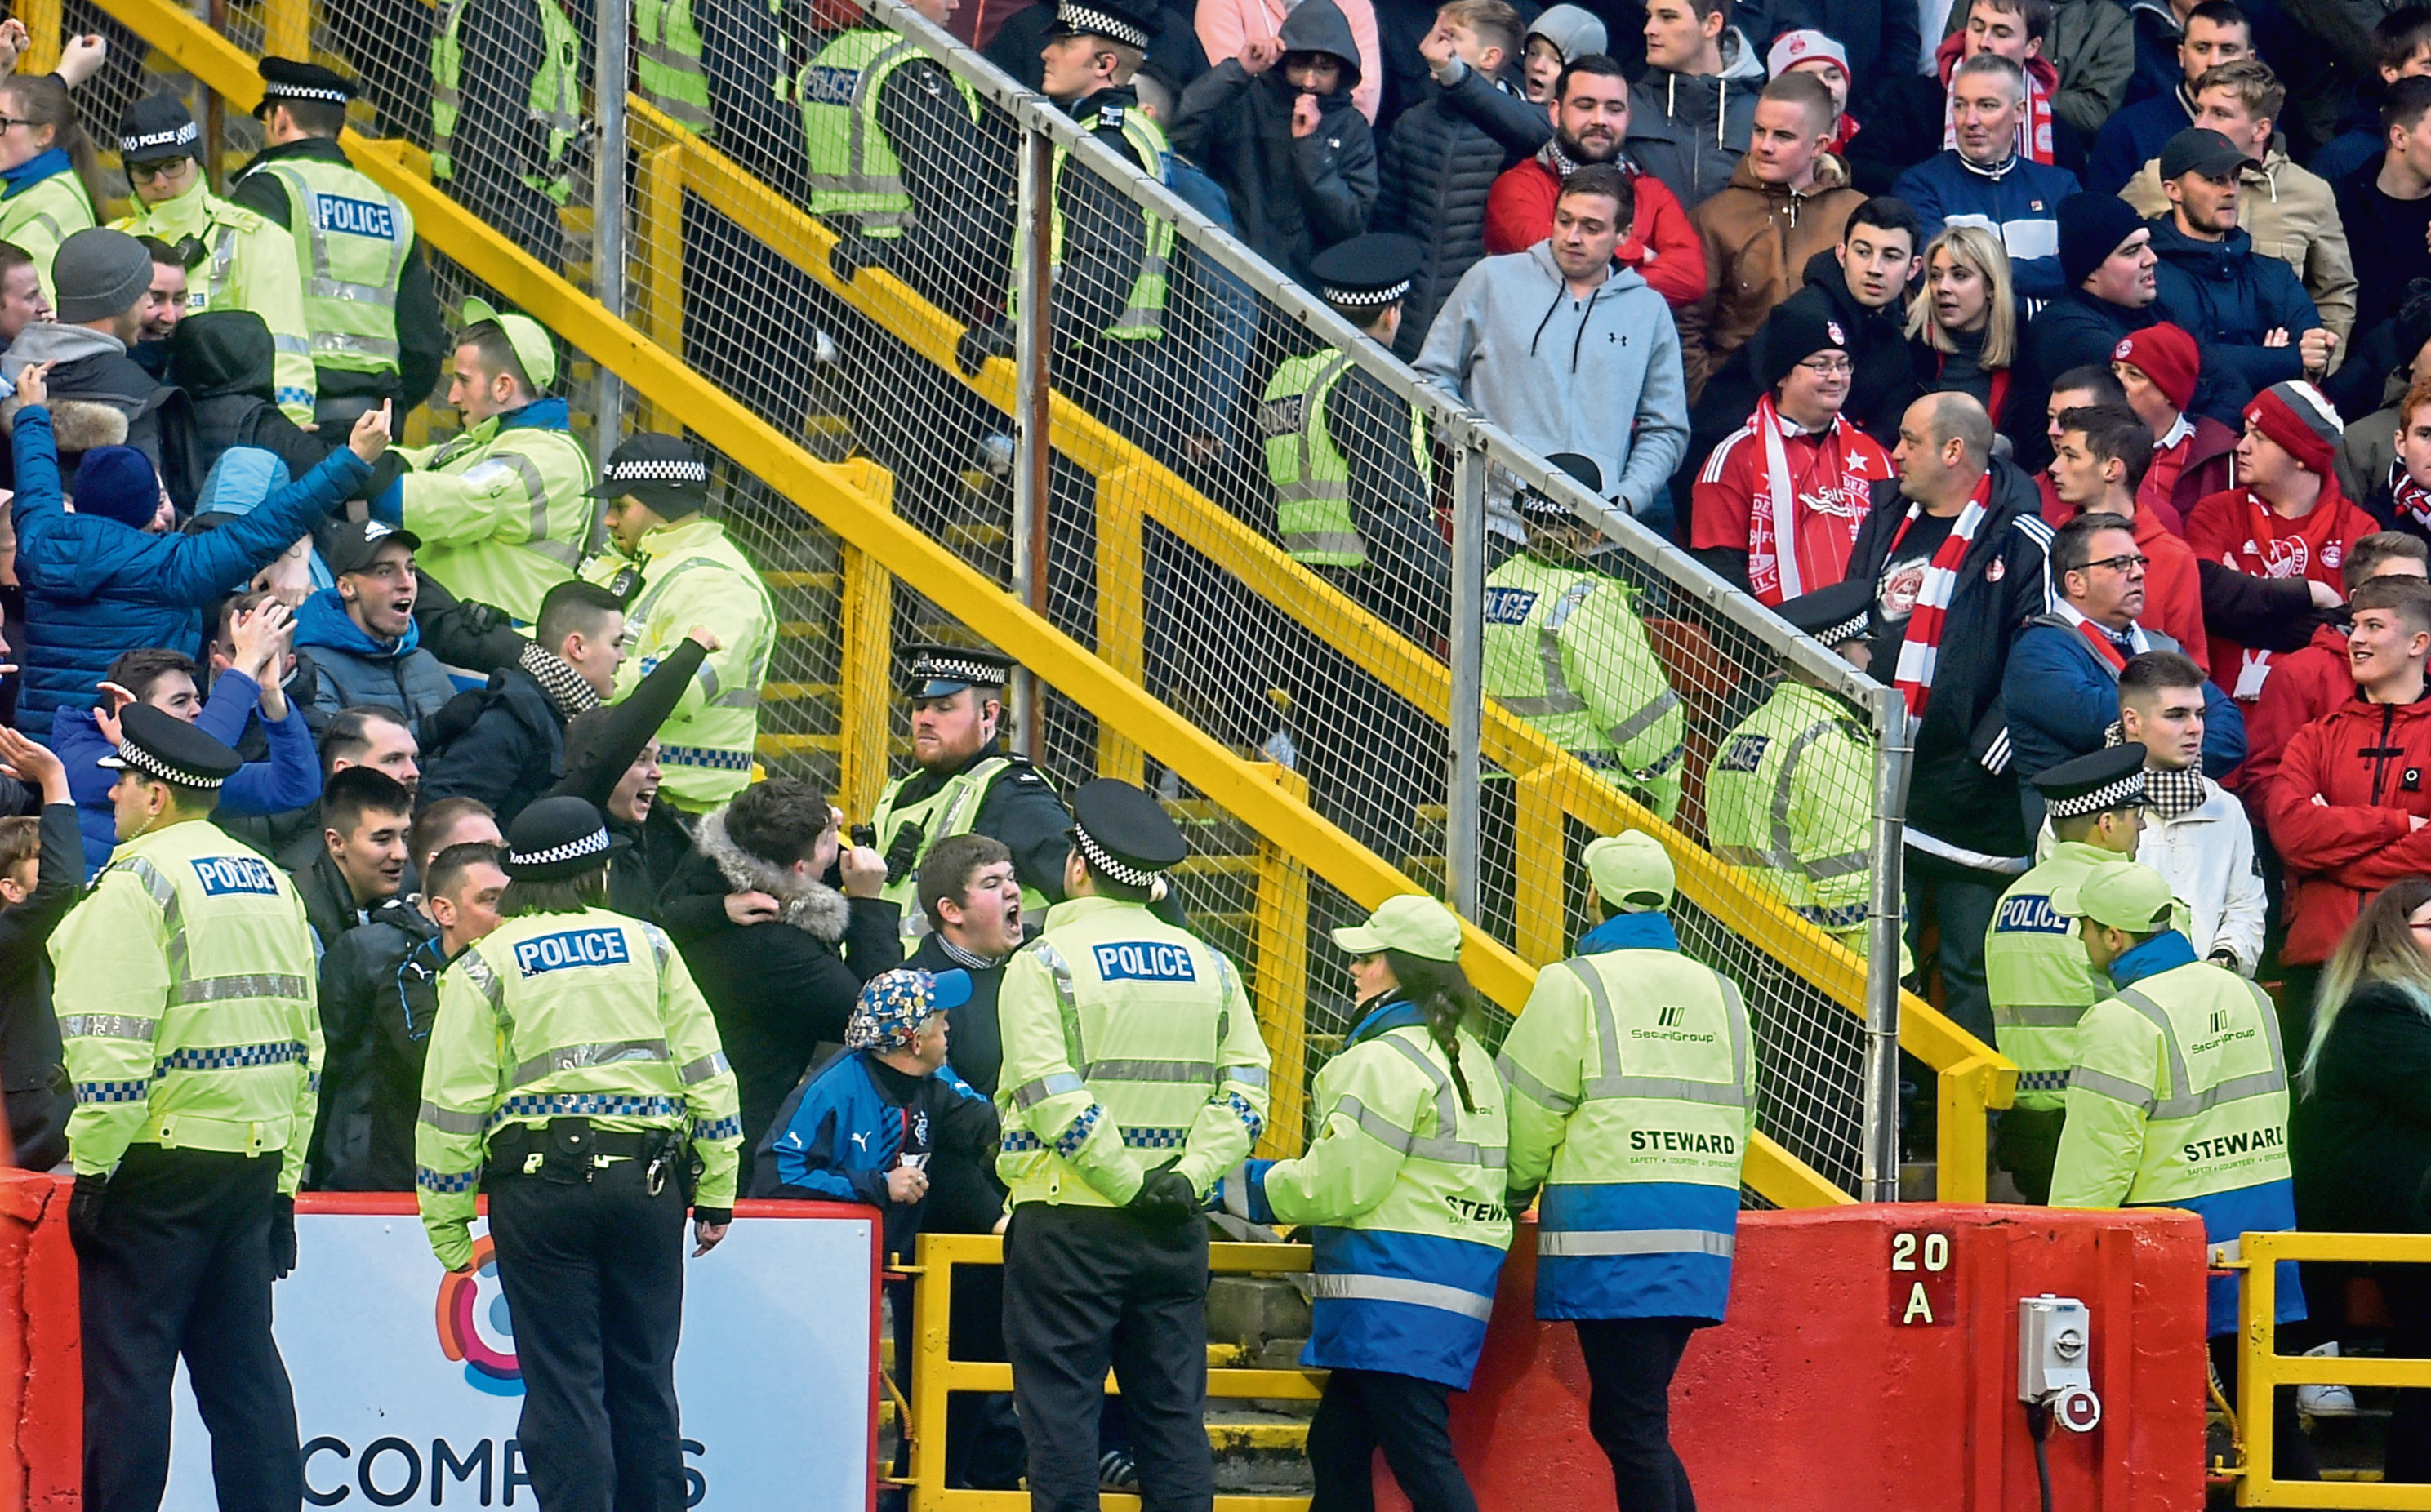 Police at Pittodrie during a match between Aberdeen and Rangers